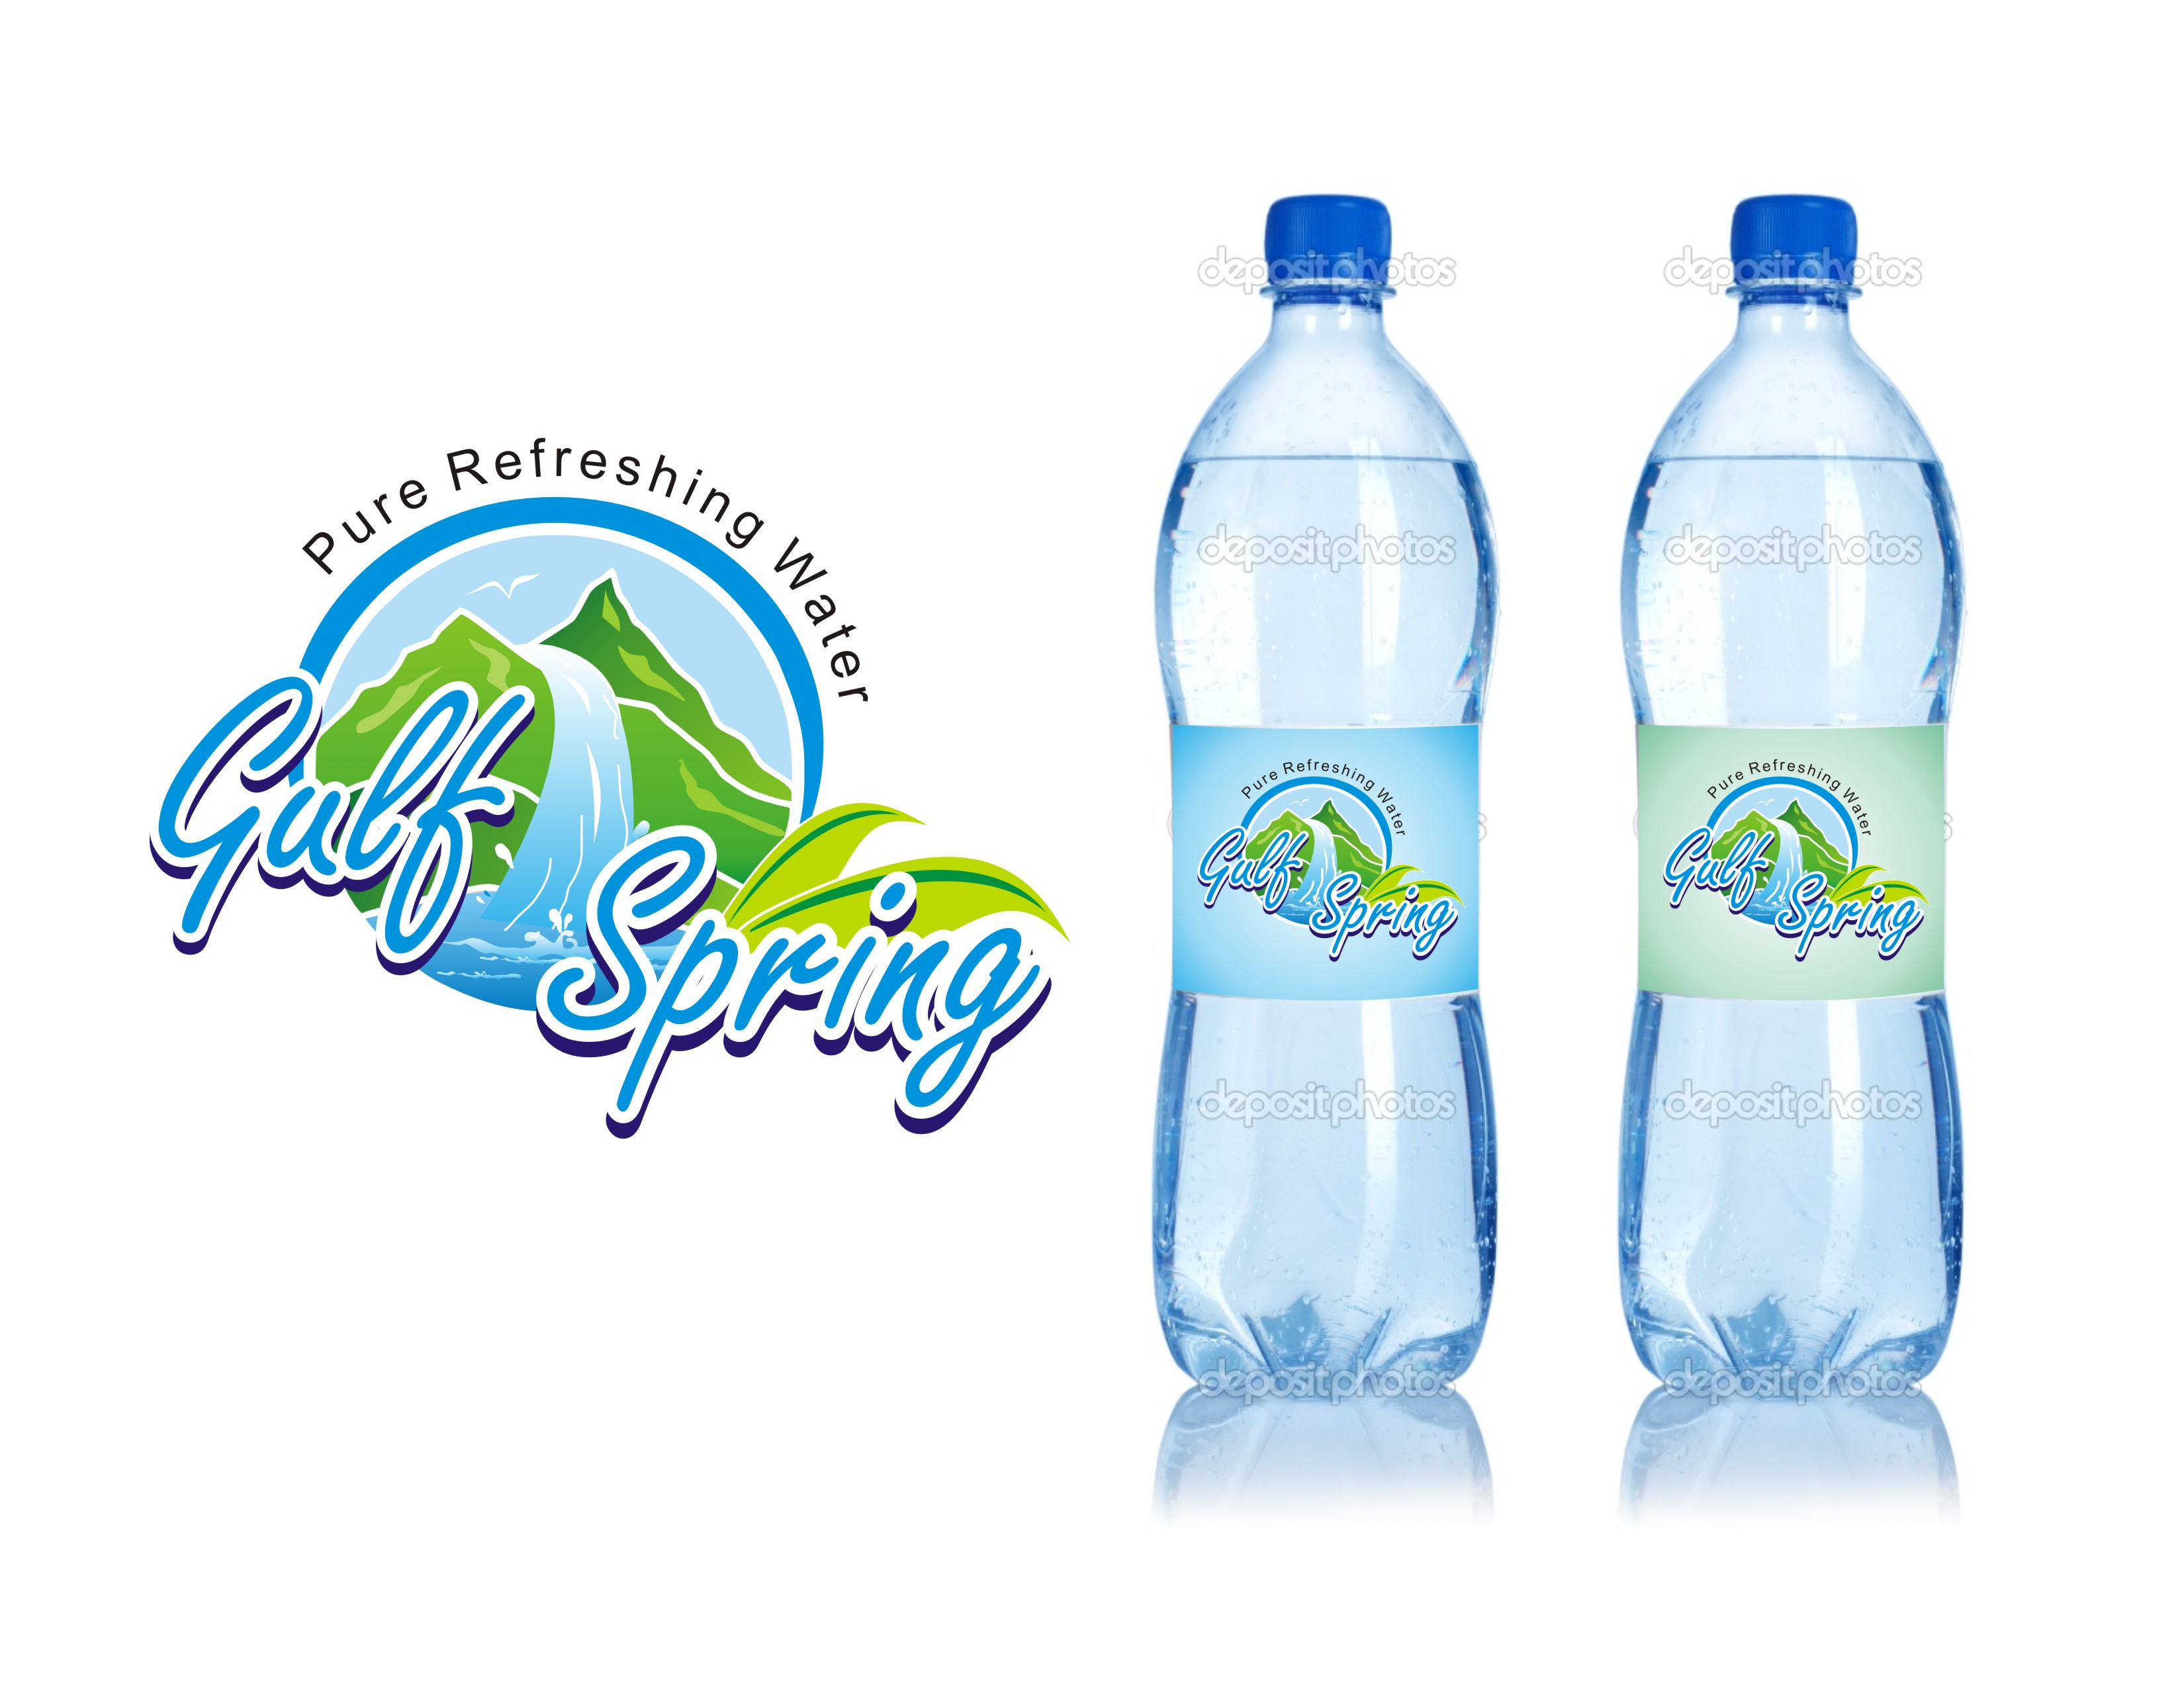 Logo Design by Mahida Kirit Chandrasinh - Entry No. 92 in the Logo Design Contest Inspiring Logo Design for Gulf Spring.